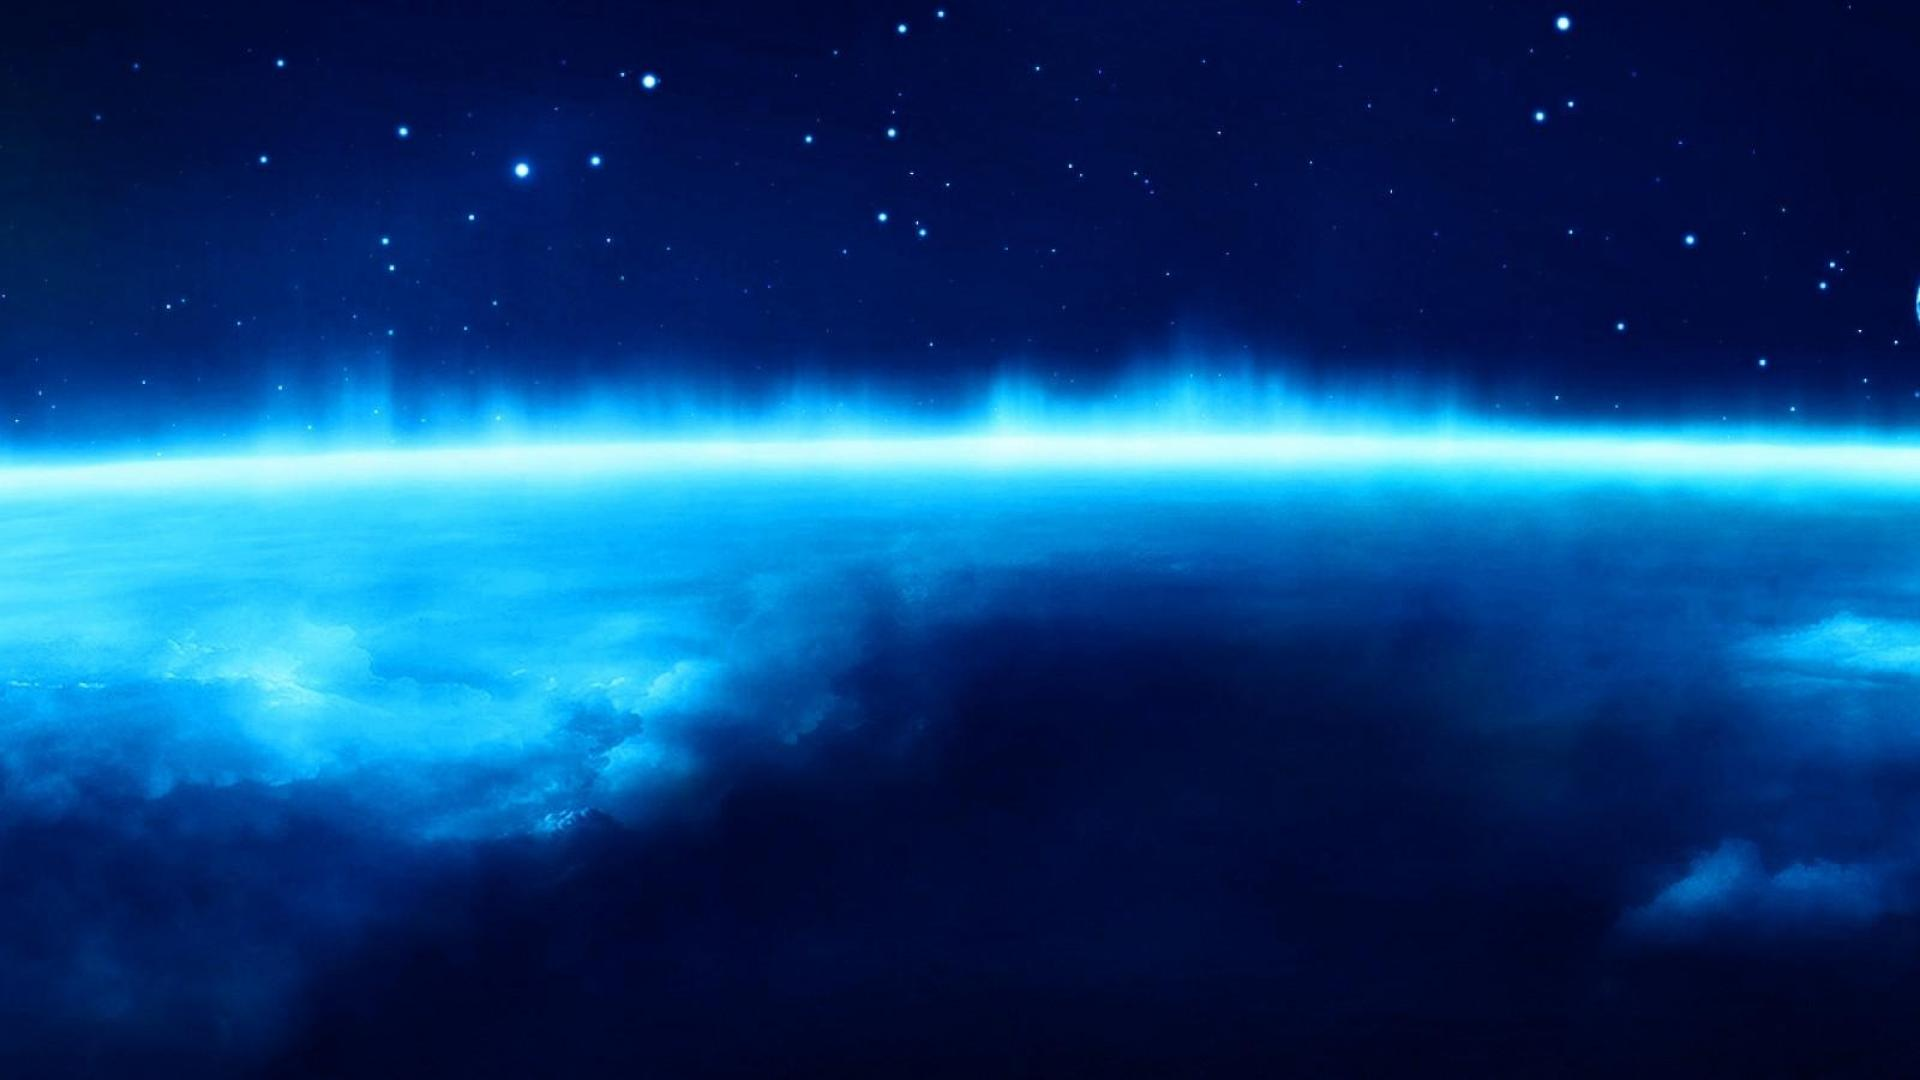 blue space background wallpapers - photo #40